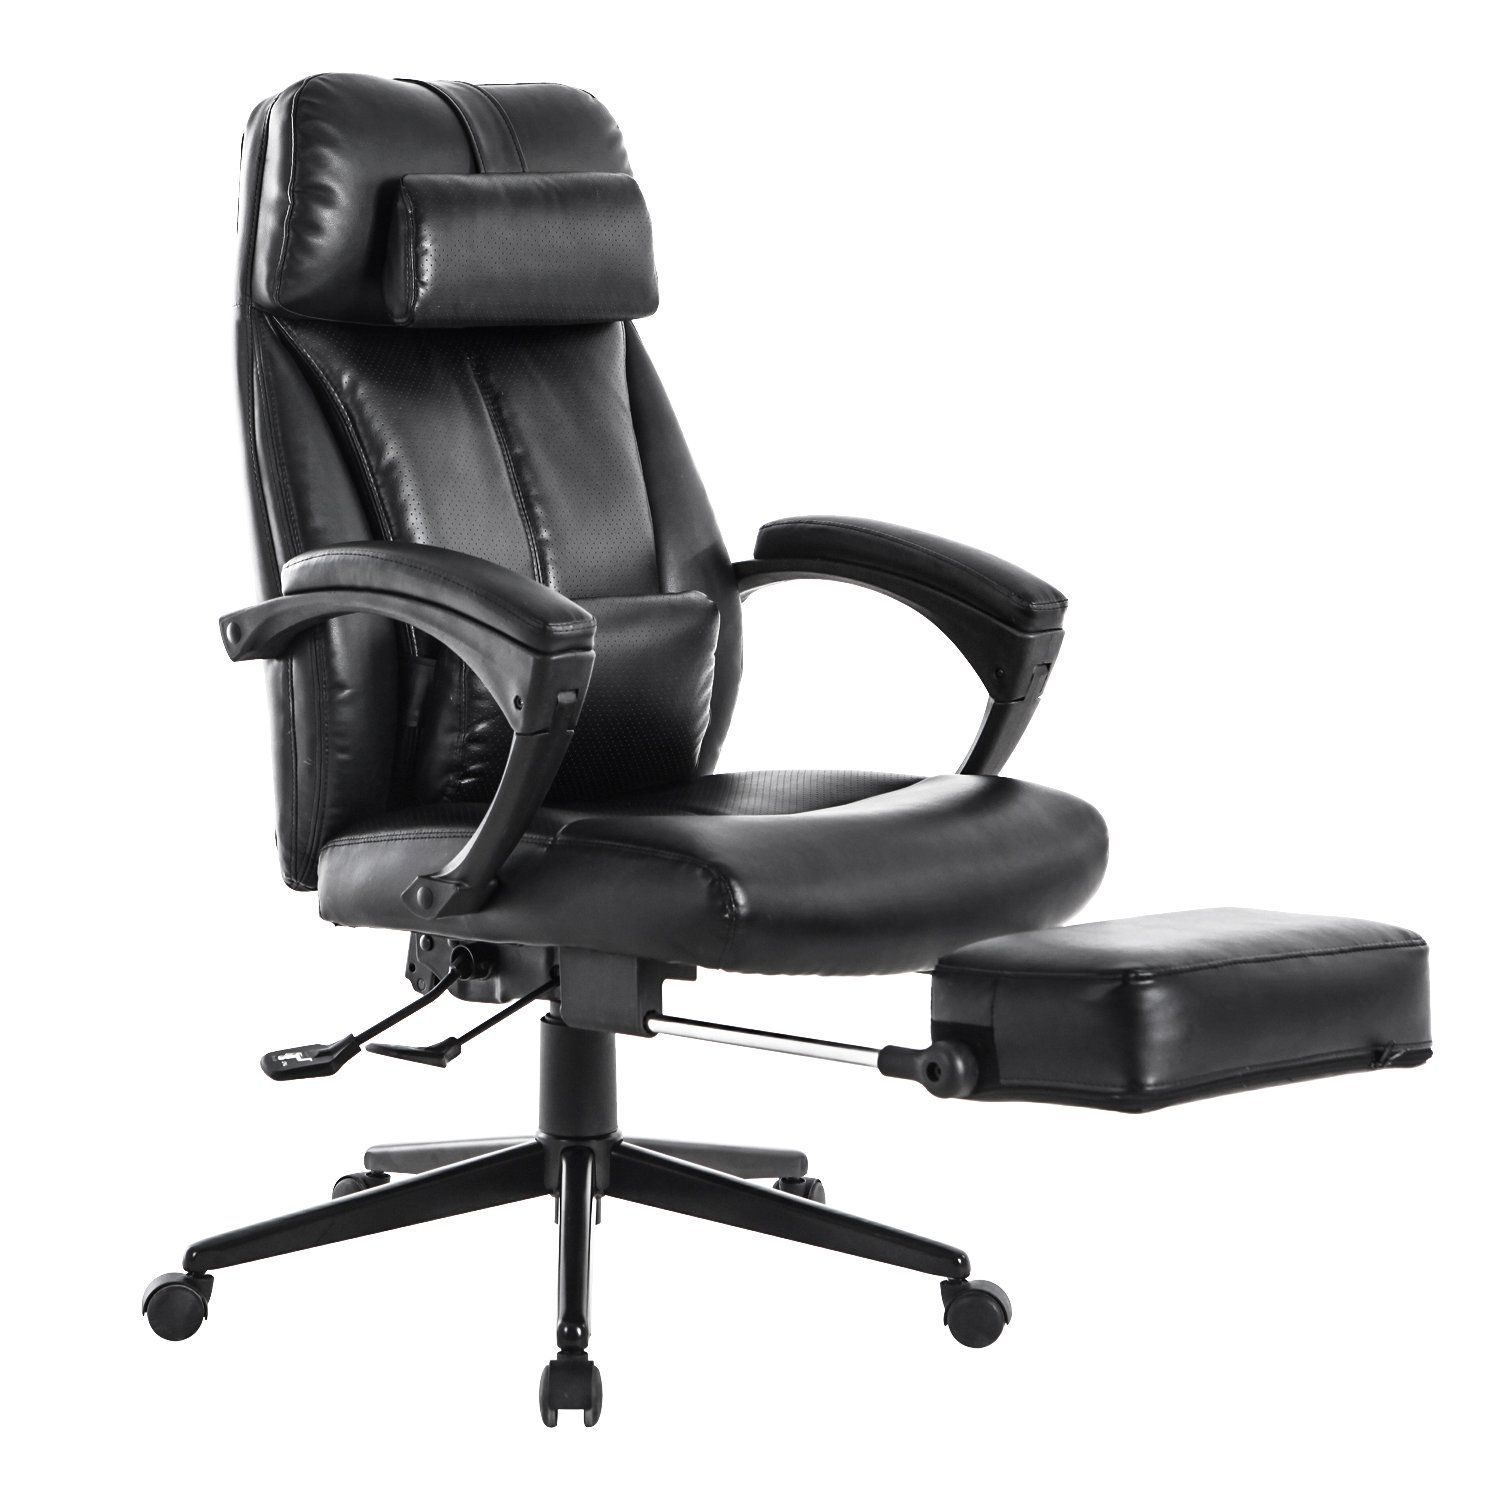 reclining office chairs. LCH Reclining Office Chair - High Back Leather Executive Computer Desk With Adjustable Angle Recline Chairs C